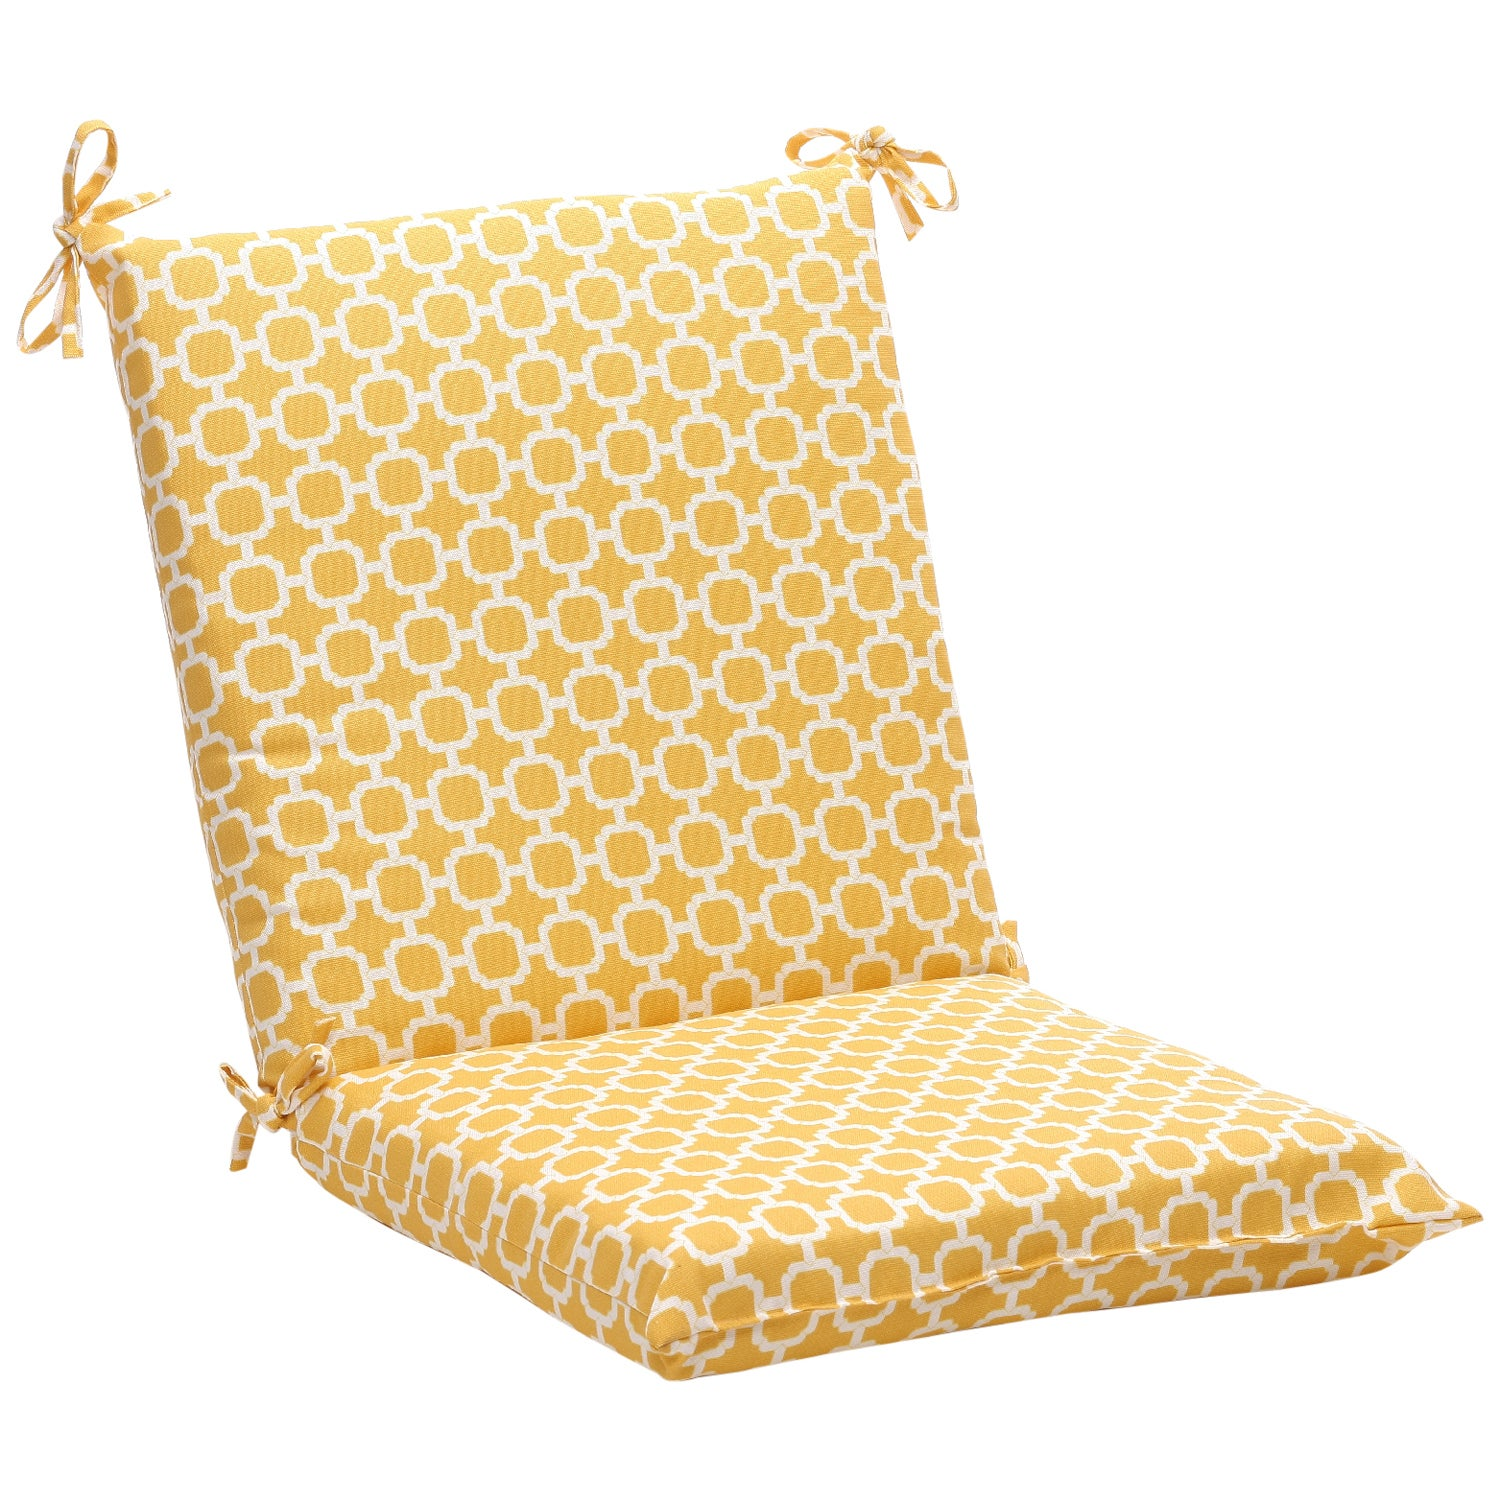 ... Perfect Outdoor/ Indoor Forsyth Soleil Rounded Corners Chair Cushion